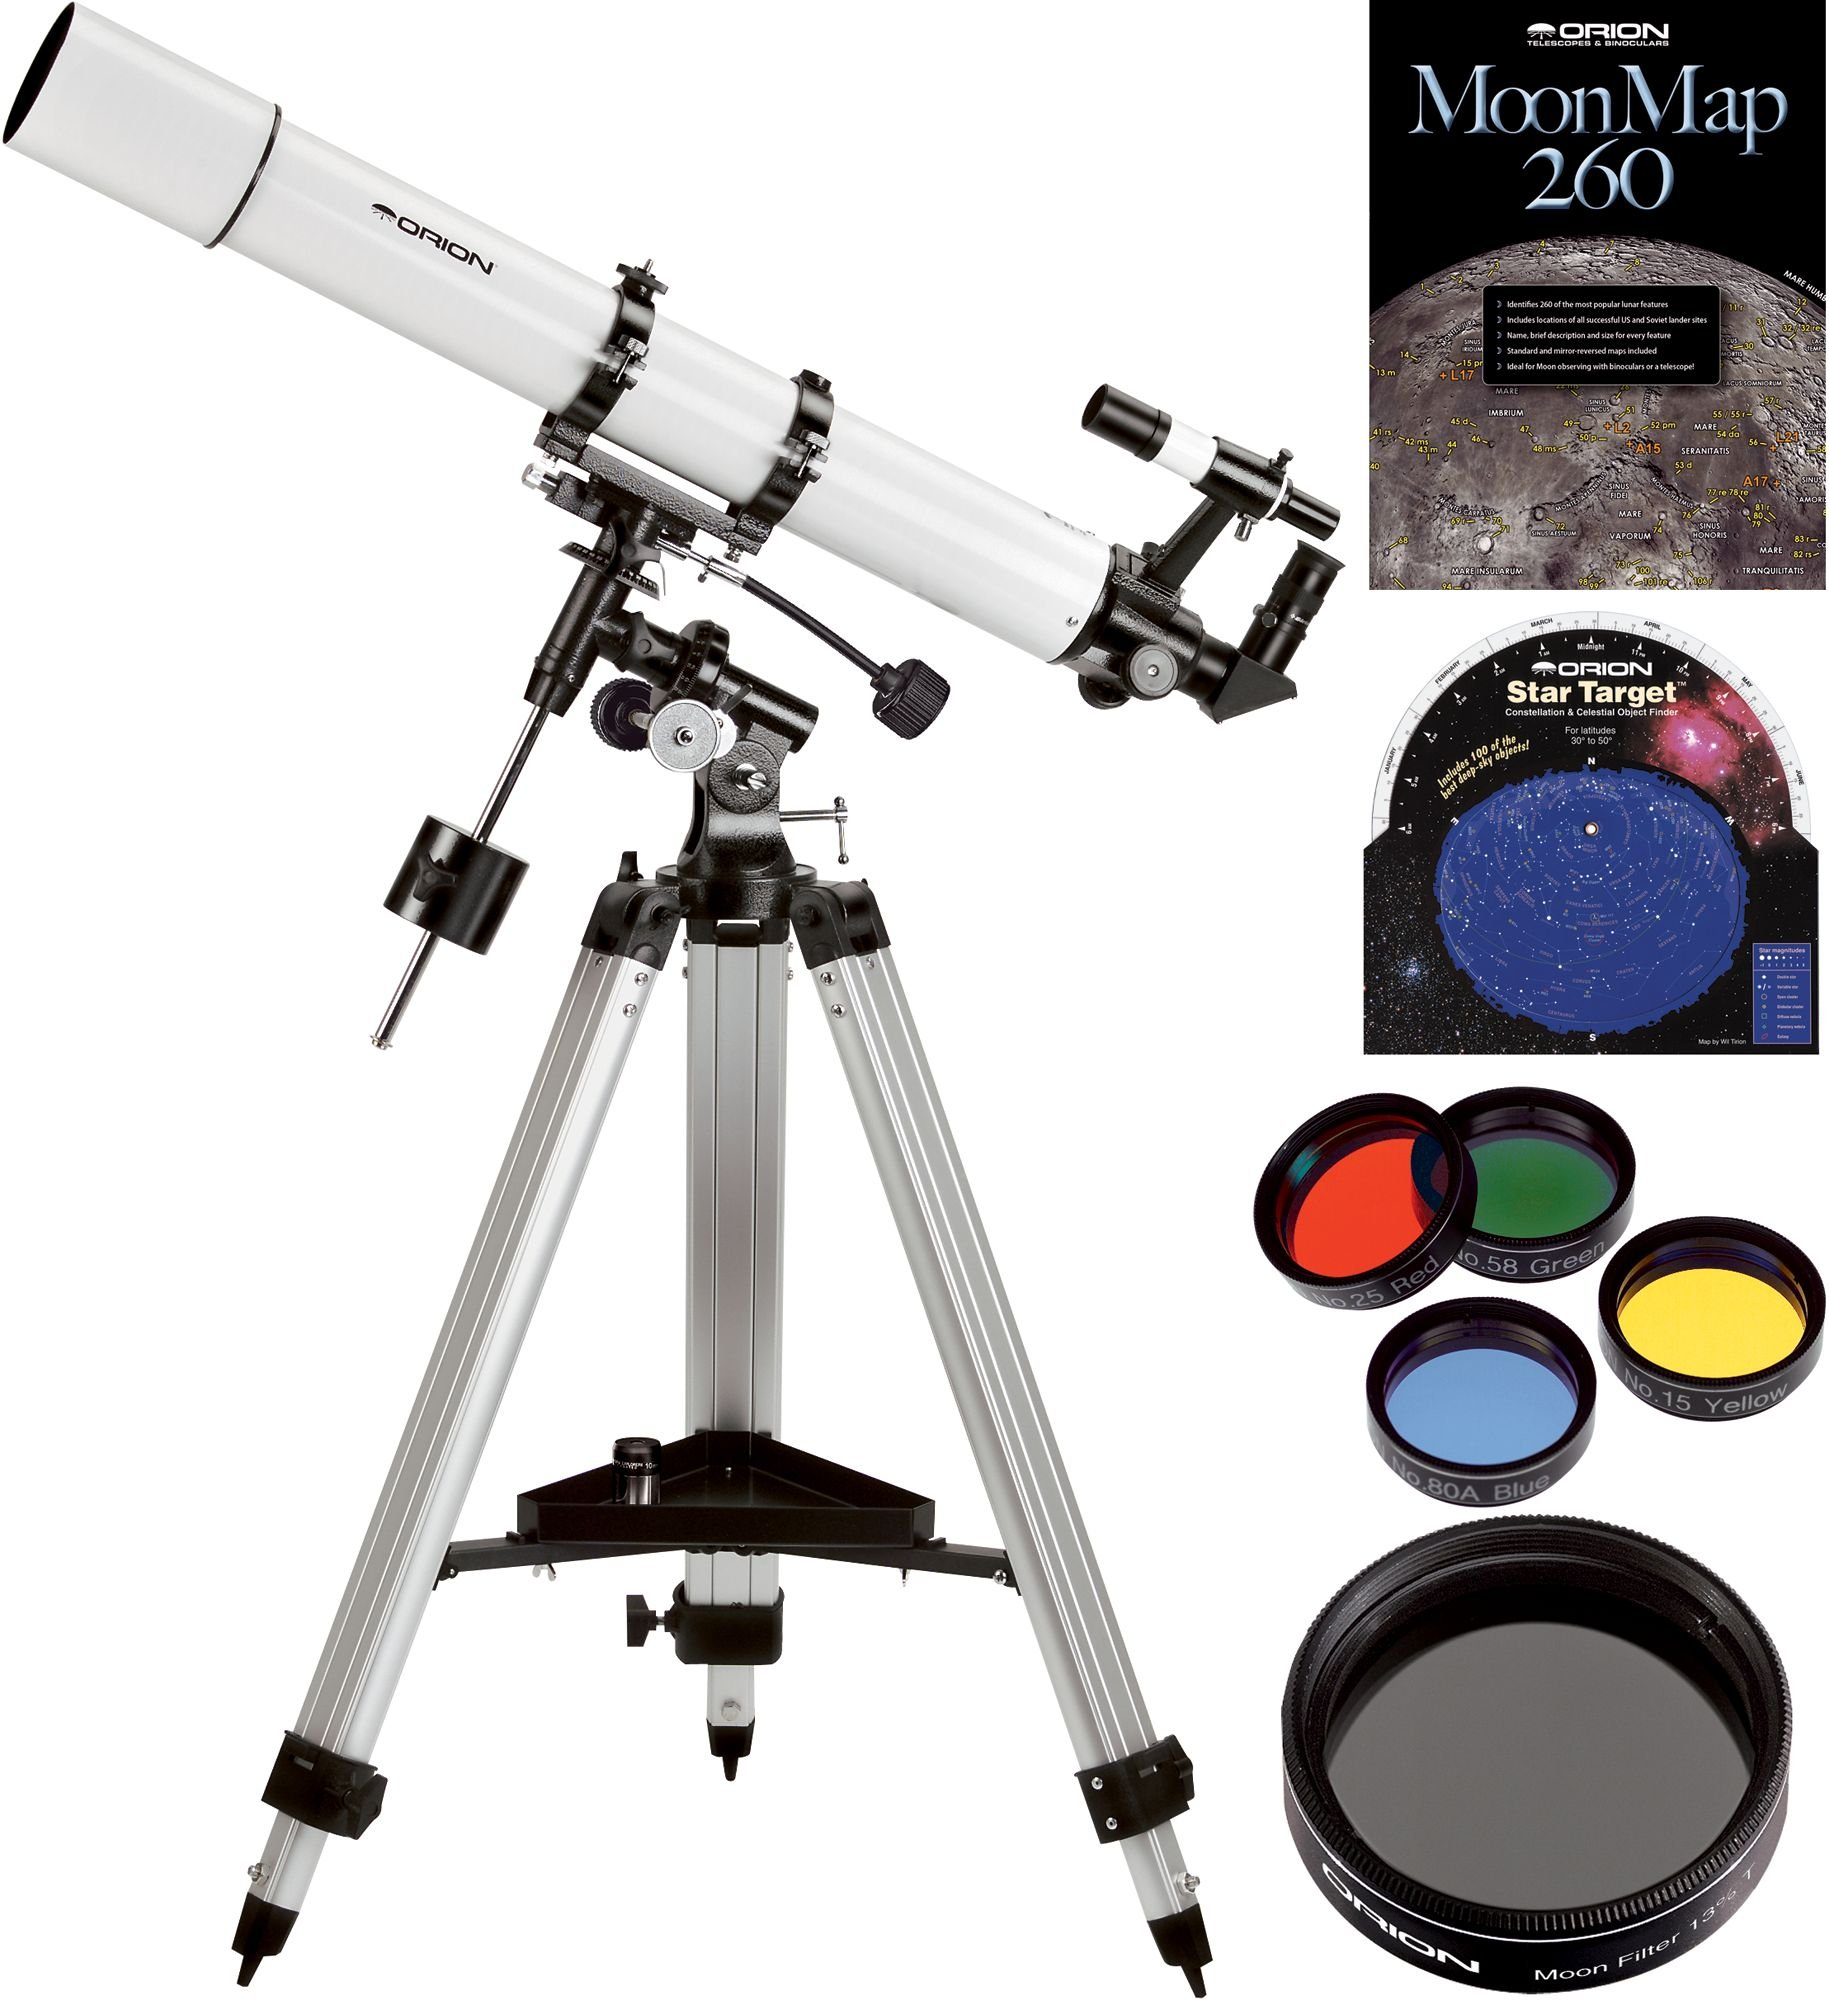 Orion AstroView 90mm EQ Refractor Telescope Kit by Orion